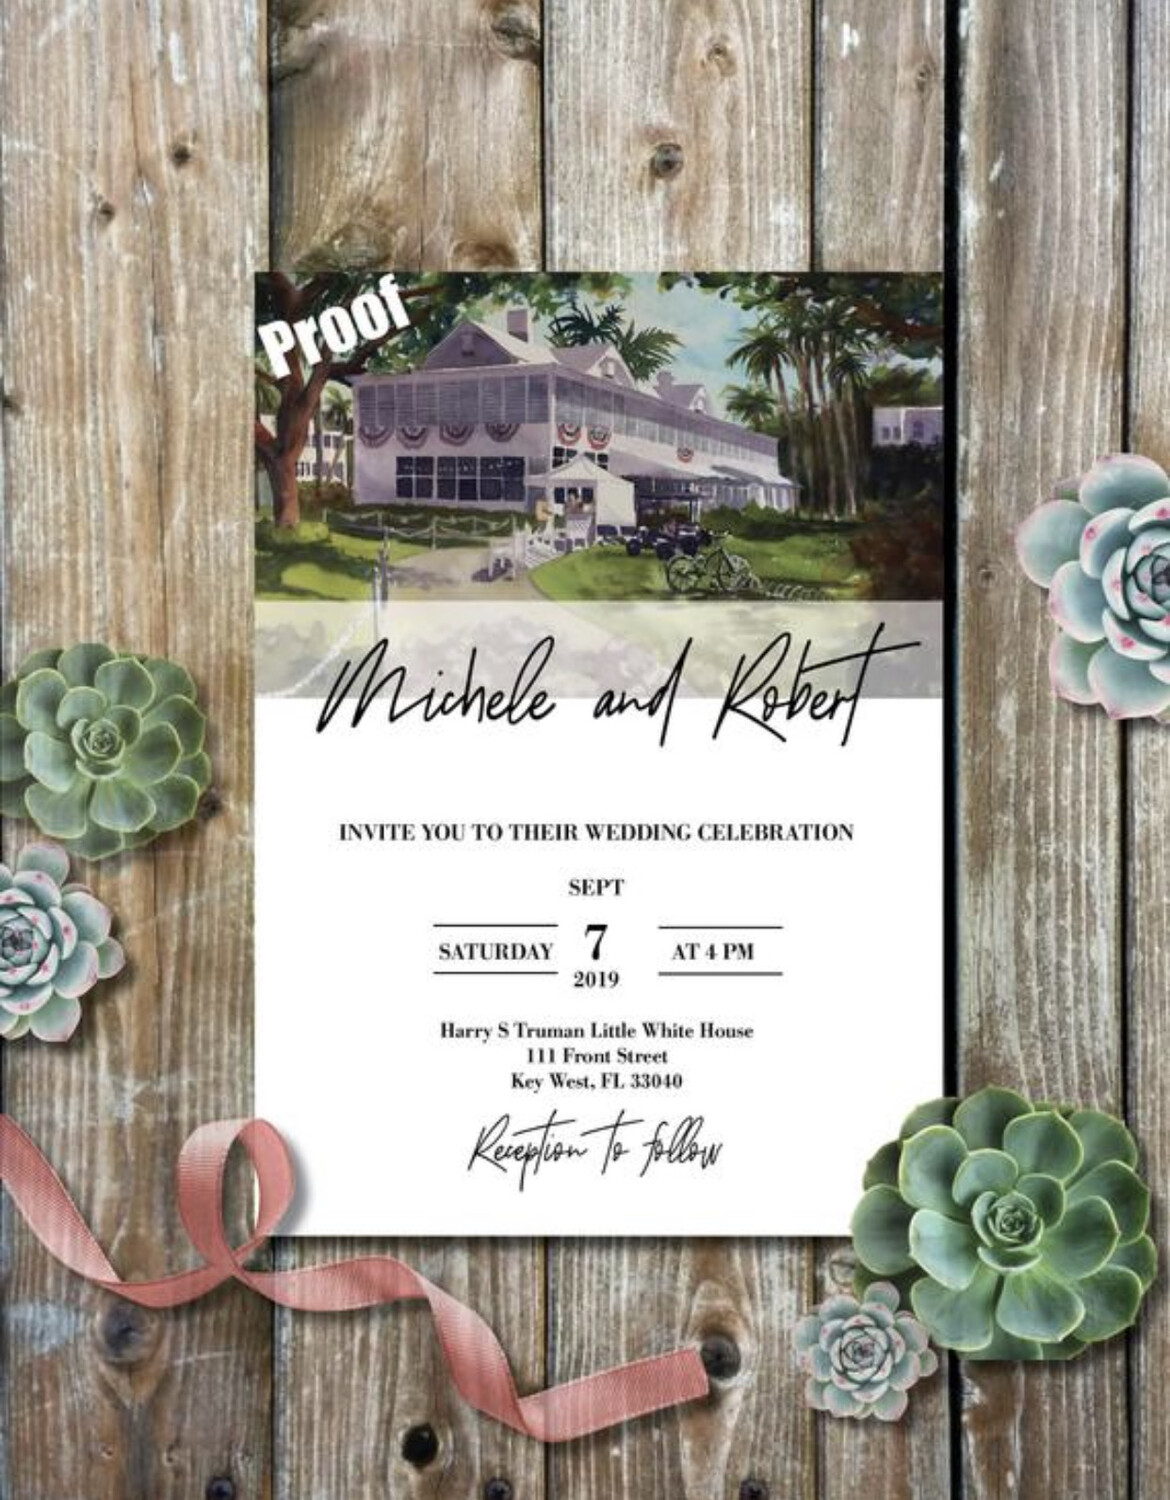 Harry S. Truman Little White House in Key West, FL - Wedding Invitations on Luxurious Paper with Envelopes - Set of 25 - Watercolor Invitation